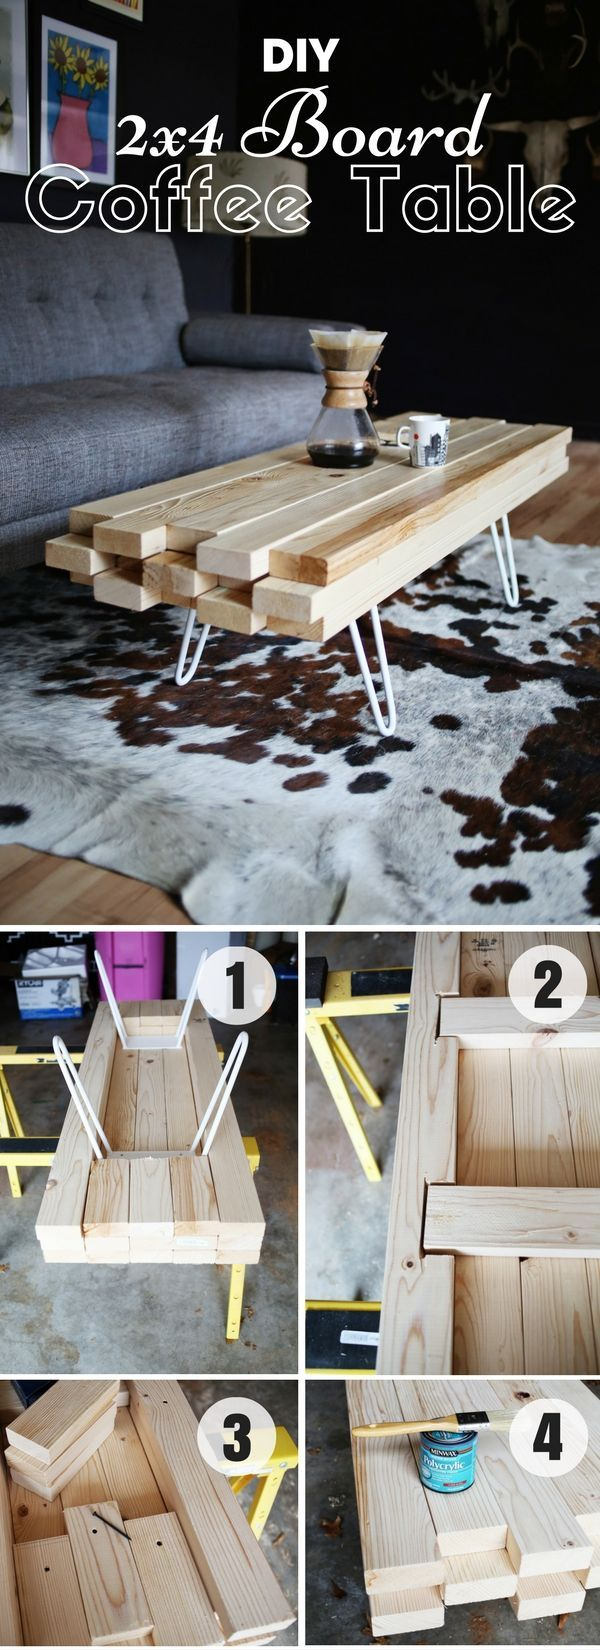 Check out how to make this easy DIY 2x4 Board Coffee Table @istandarddesignCall today or stop by for a tour of our facility! Indoor Units Available! Ideal for Outdoor gear, Furniture, Antiques, Collectibles, etc. 505-275-2825